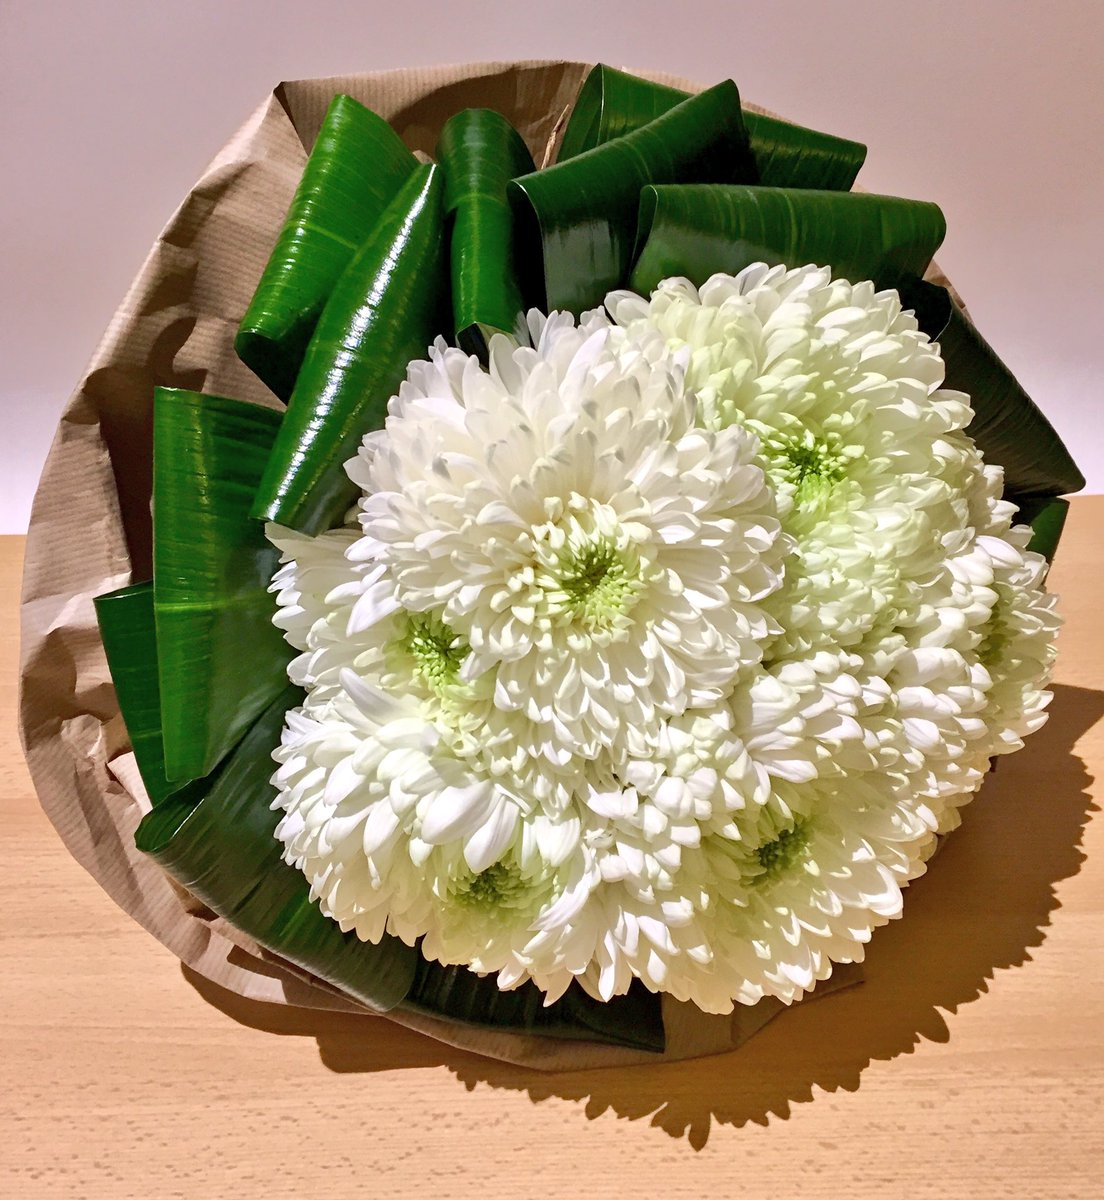 Neil Bain On Twitter A Compact Tied Posy Of White Chrysanthemum